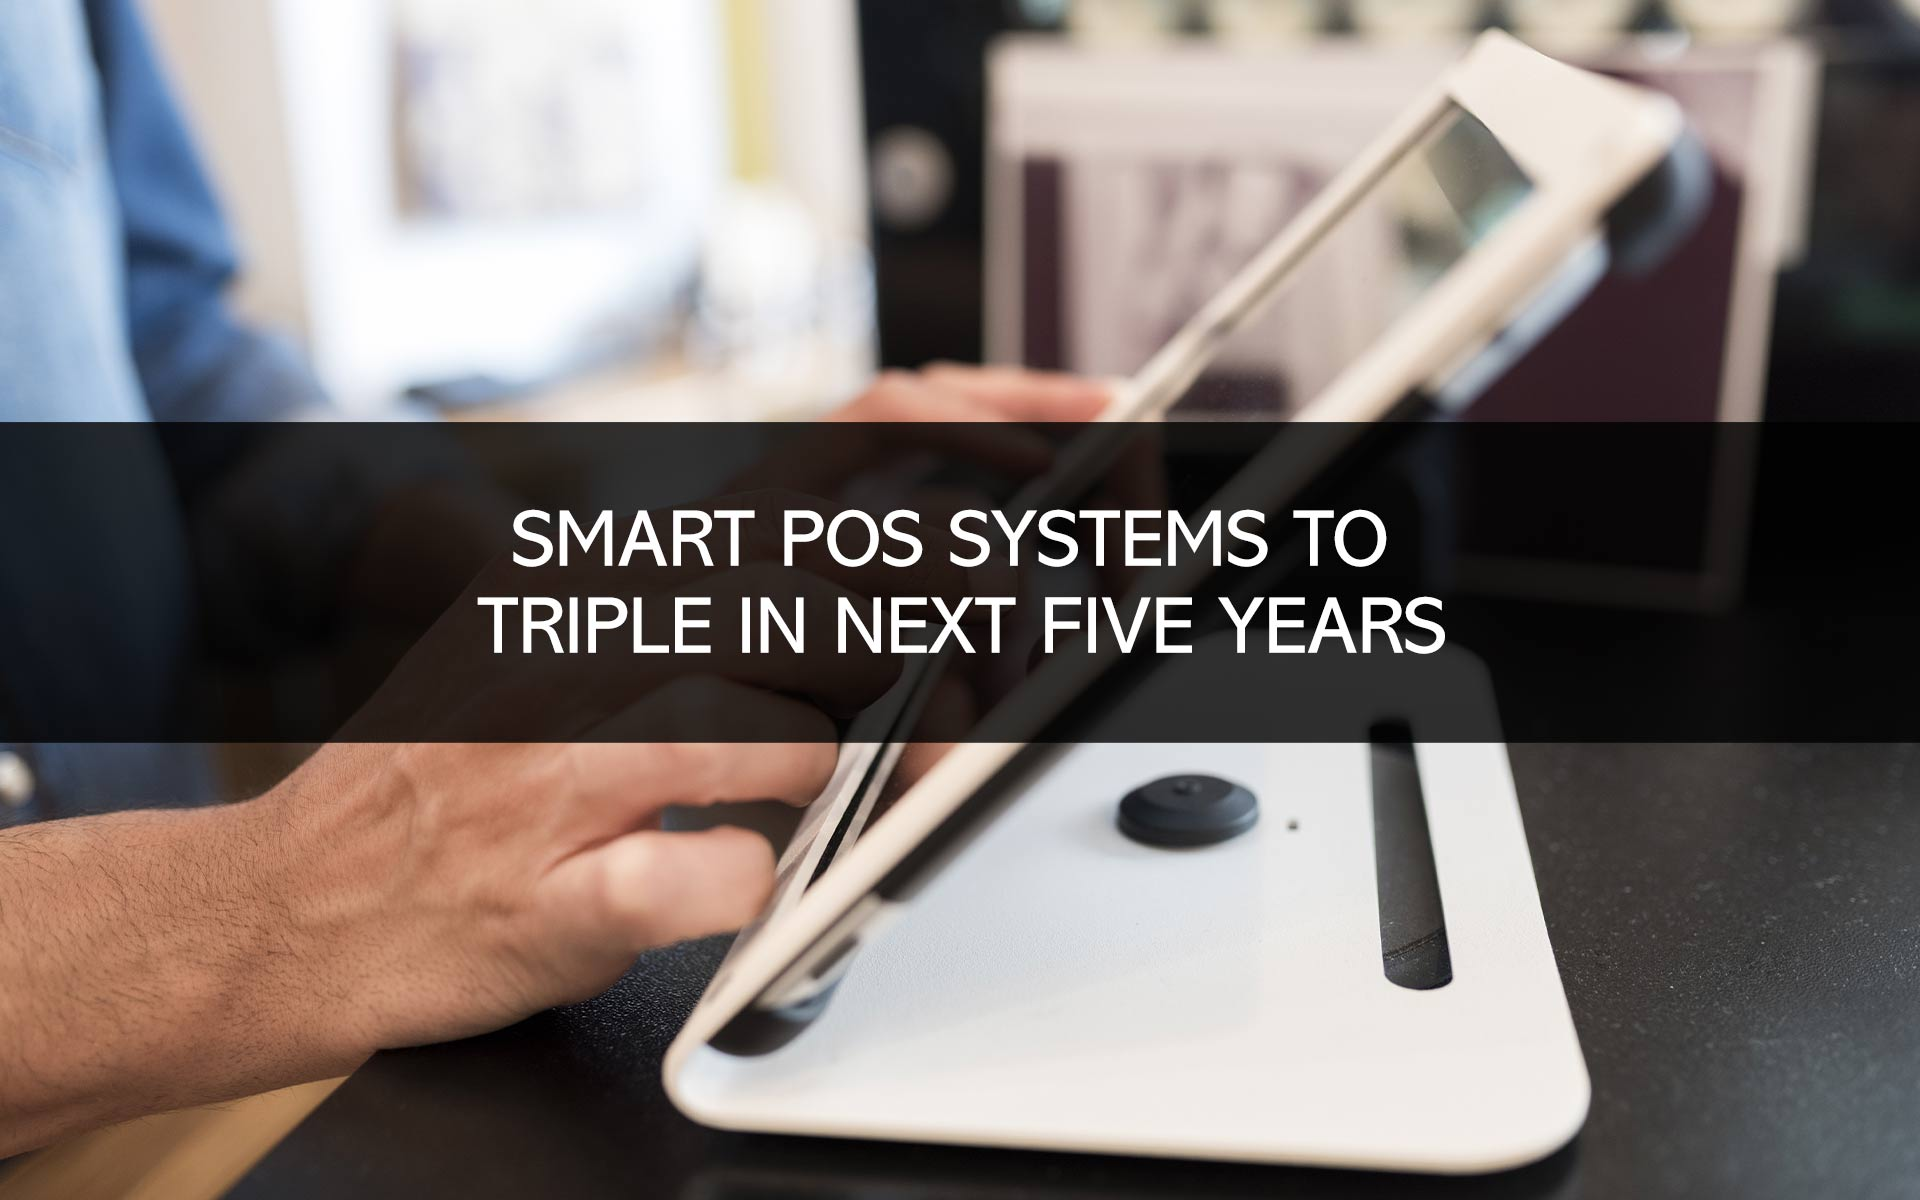 Smart POS Systems to Triple in Next Five Years